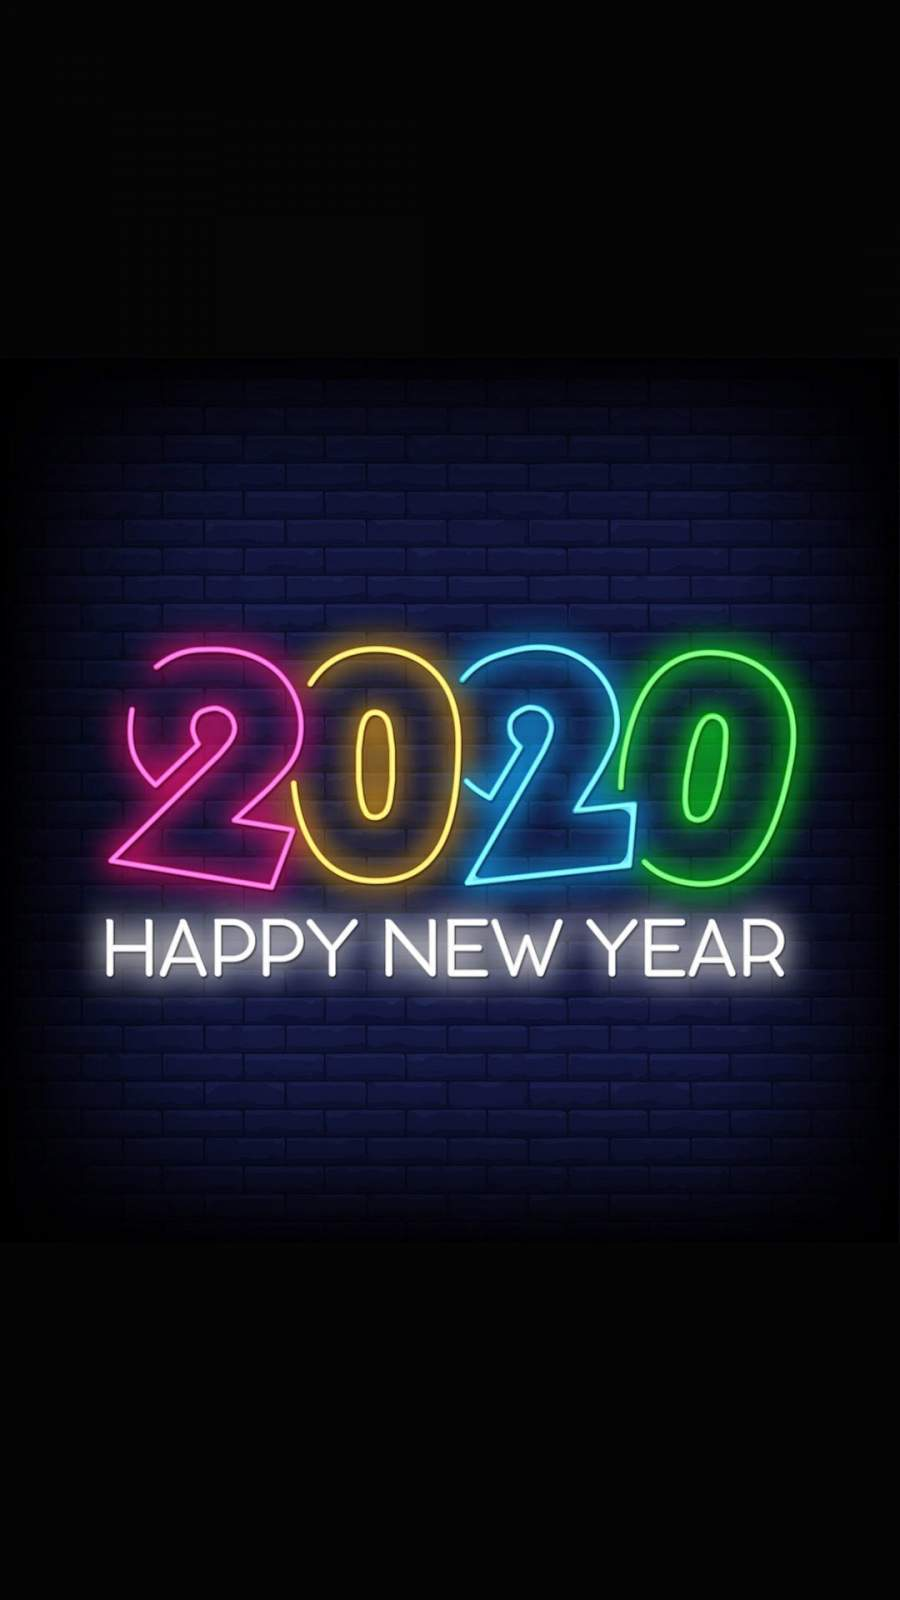 Happy New Year 2020 iPhone Wallpaper 1